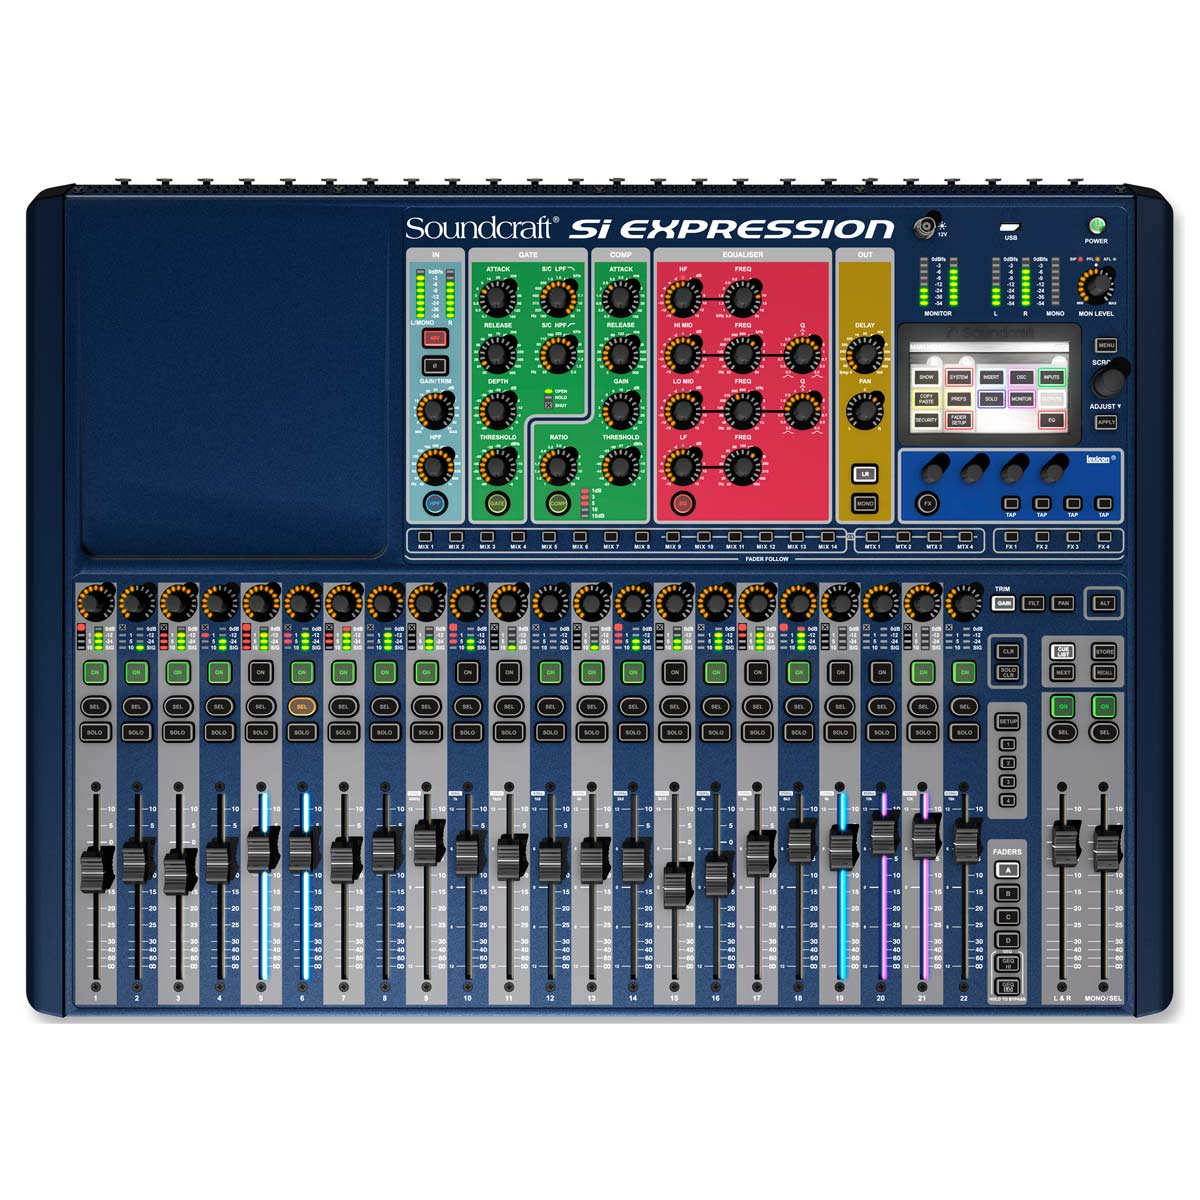 SiExpression2 - Mesa de Som / Mixer Digital 24 Canais 14 Auxiliares Si Expression 2 - Soundcraft